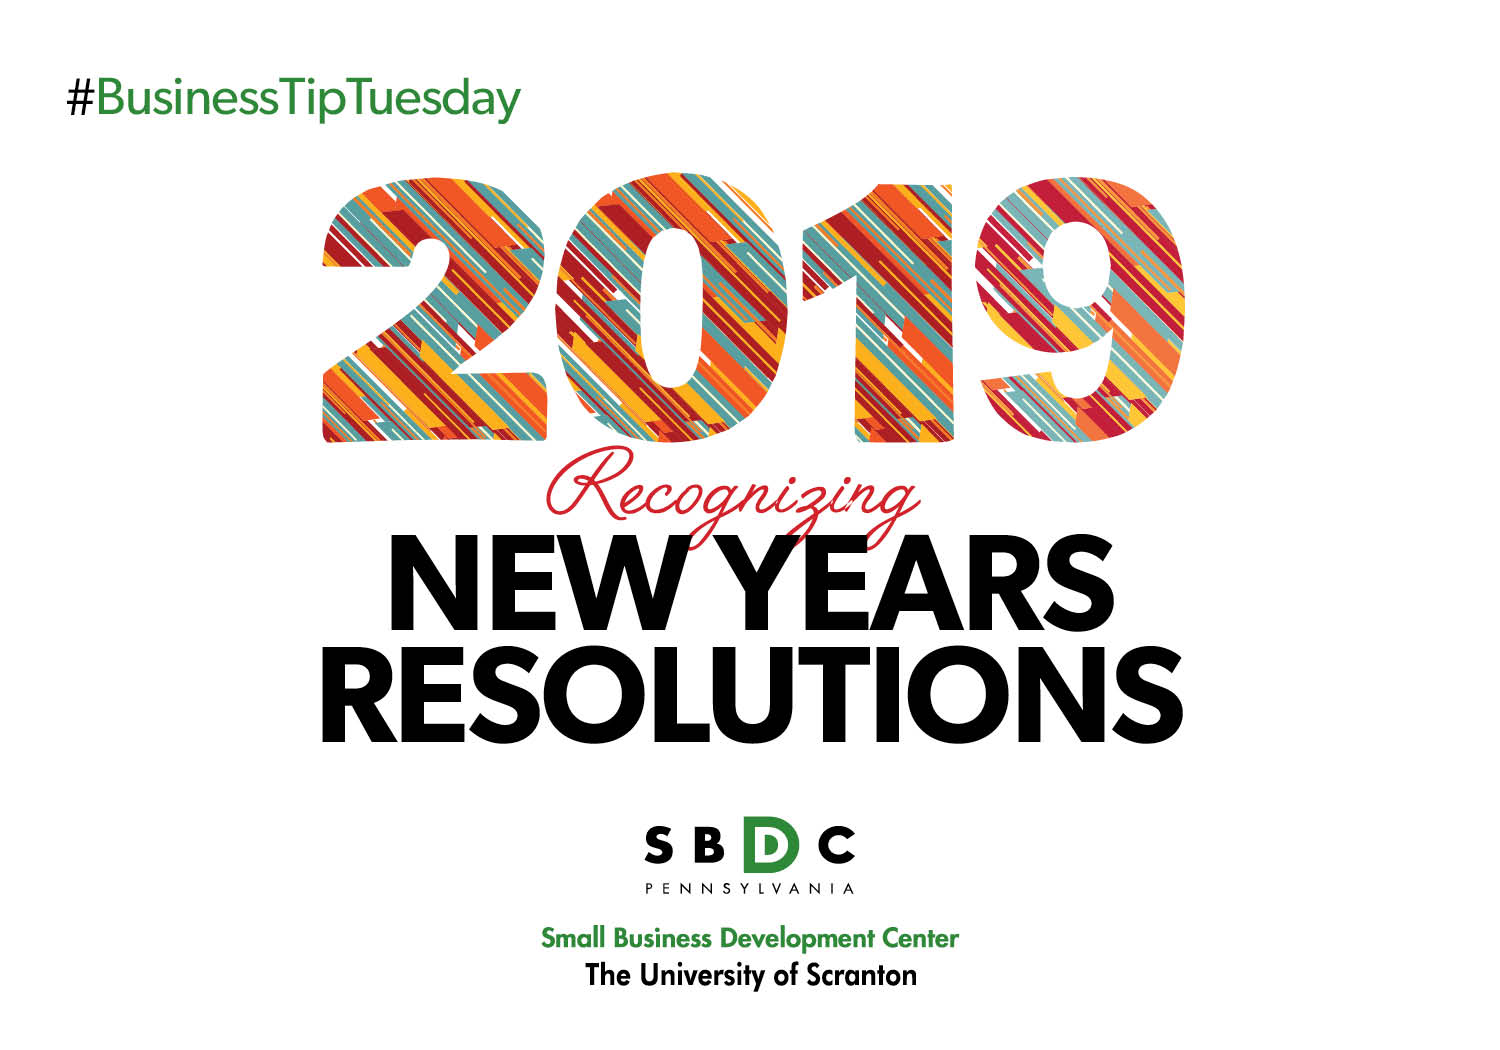 #BusinessTipTuesday – New Years Resolutions